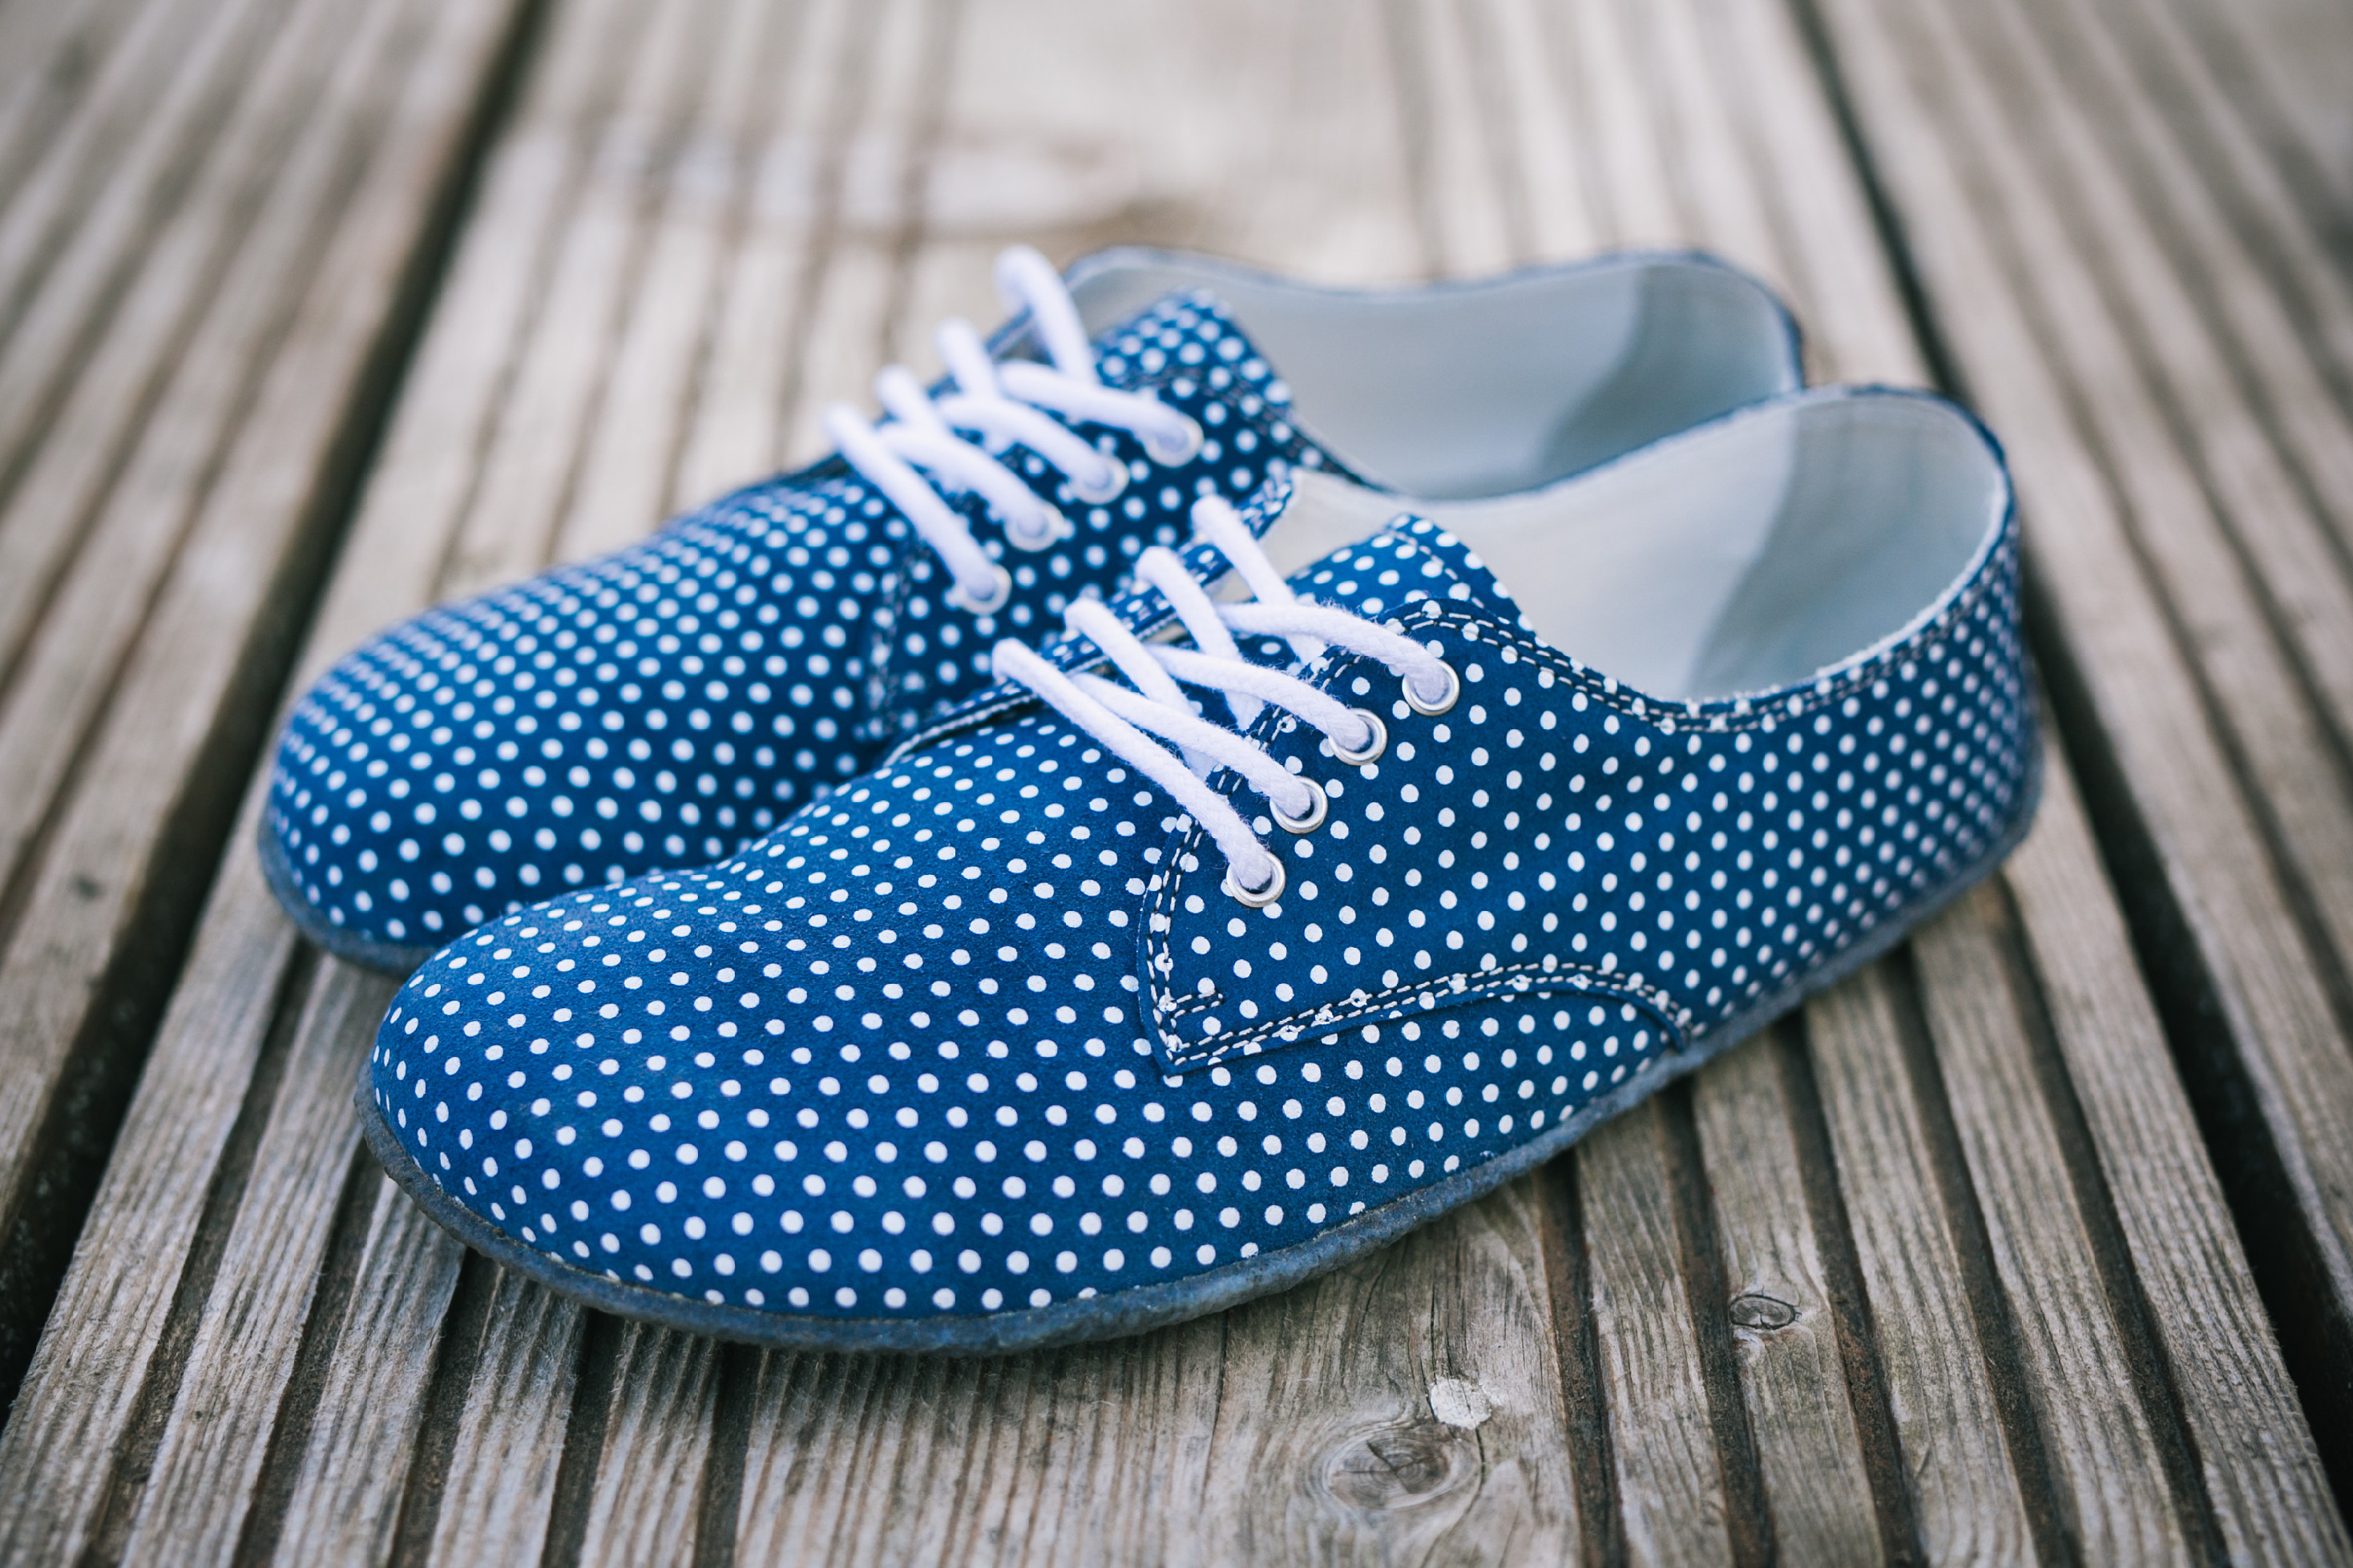 Barefoot Shoes - Be Lenka City - Dark Blue with White Dots '19 45